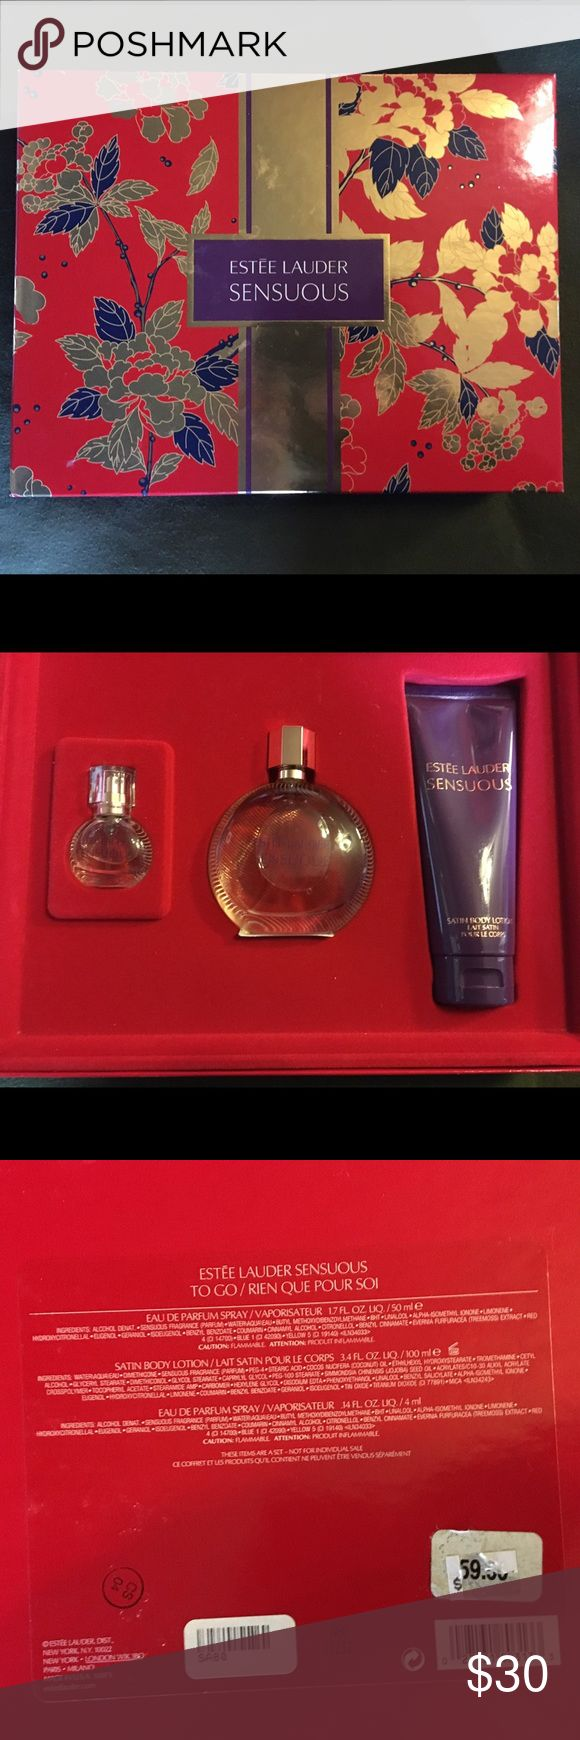 Estée Lauder Sensuous Gift Set Estée Lauder perfume gift set. Brand new never used. Comes with 1.7 oz big perfume. Body lotion. And a smaller .14oz bottle. Price is $59.50 on box Estee Lauder Other